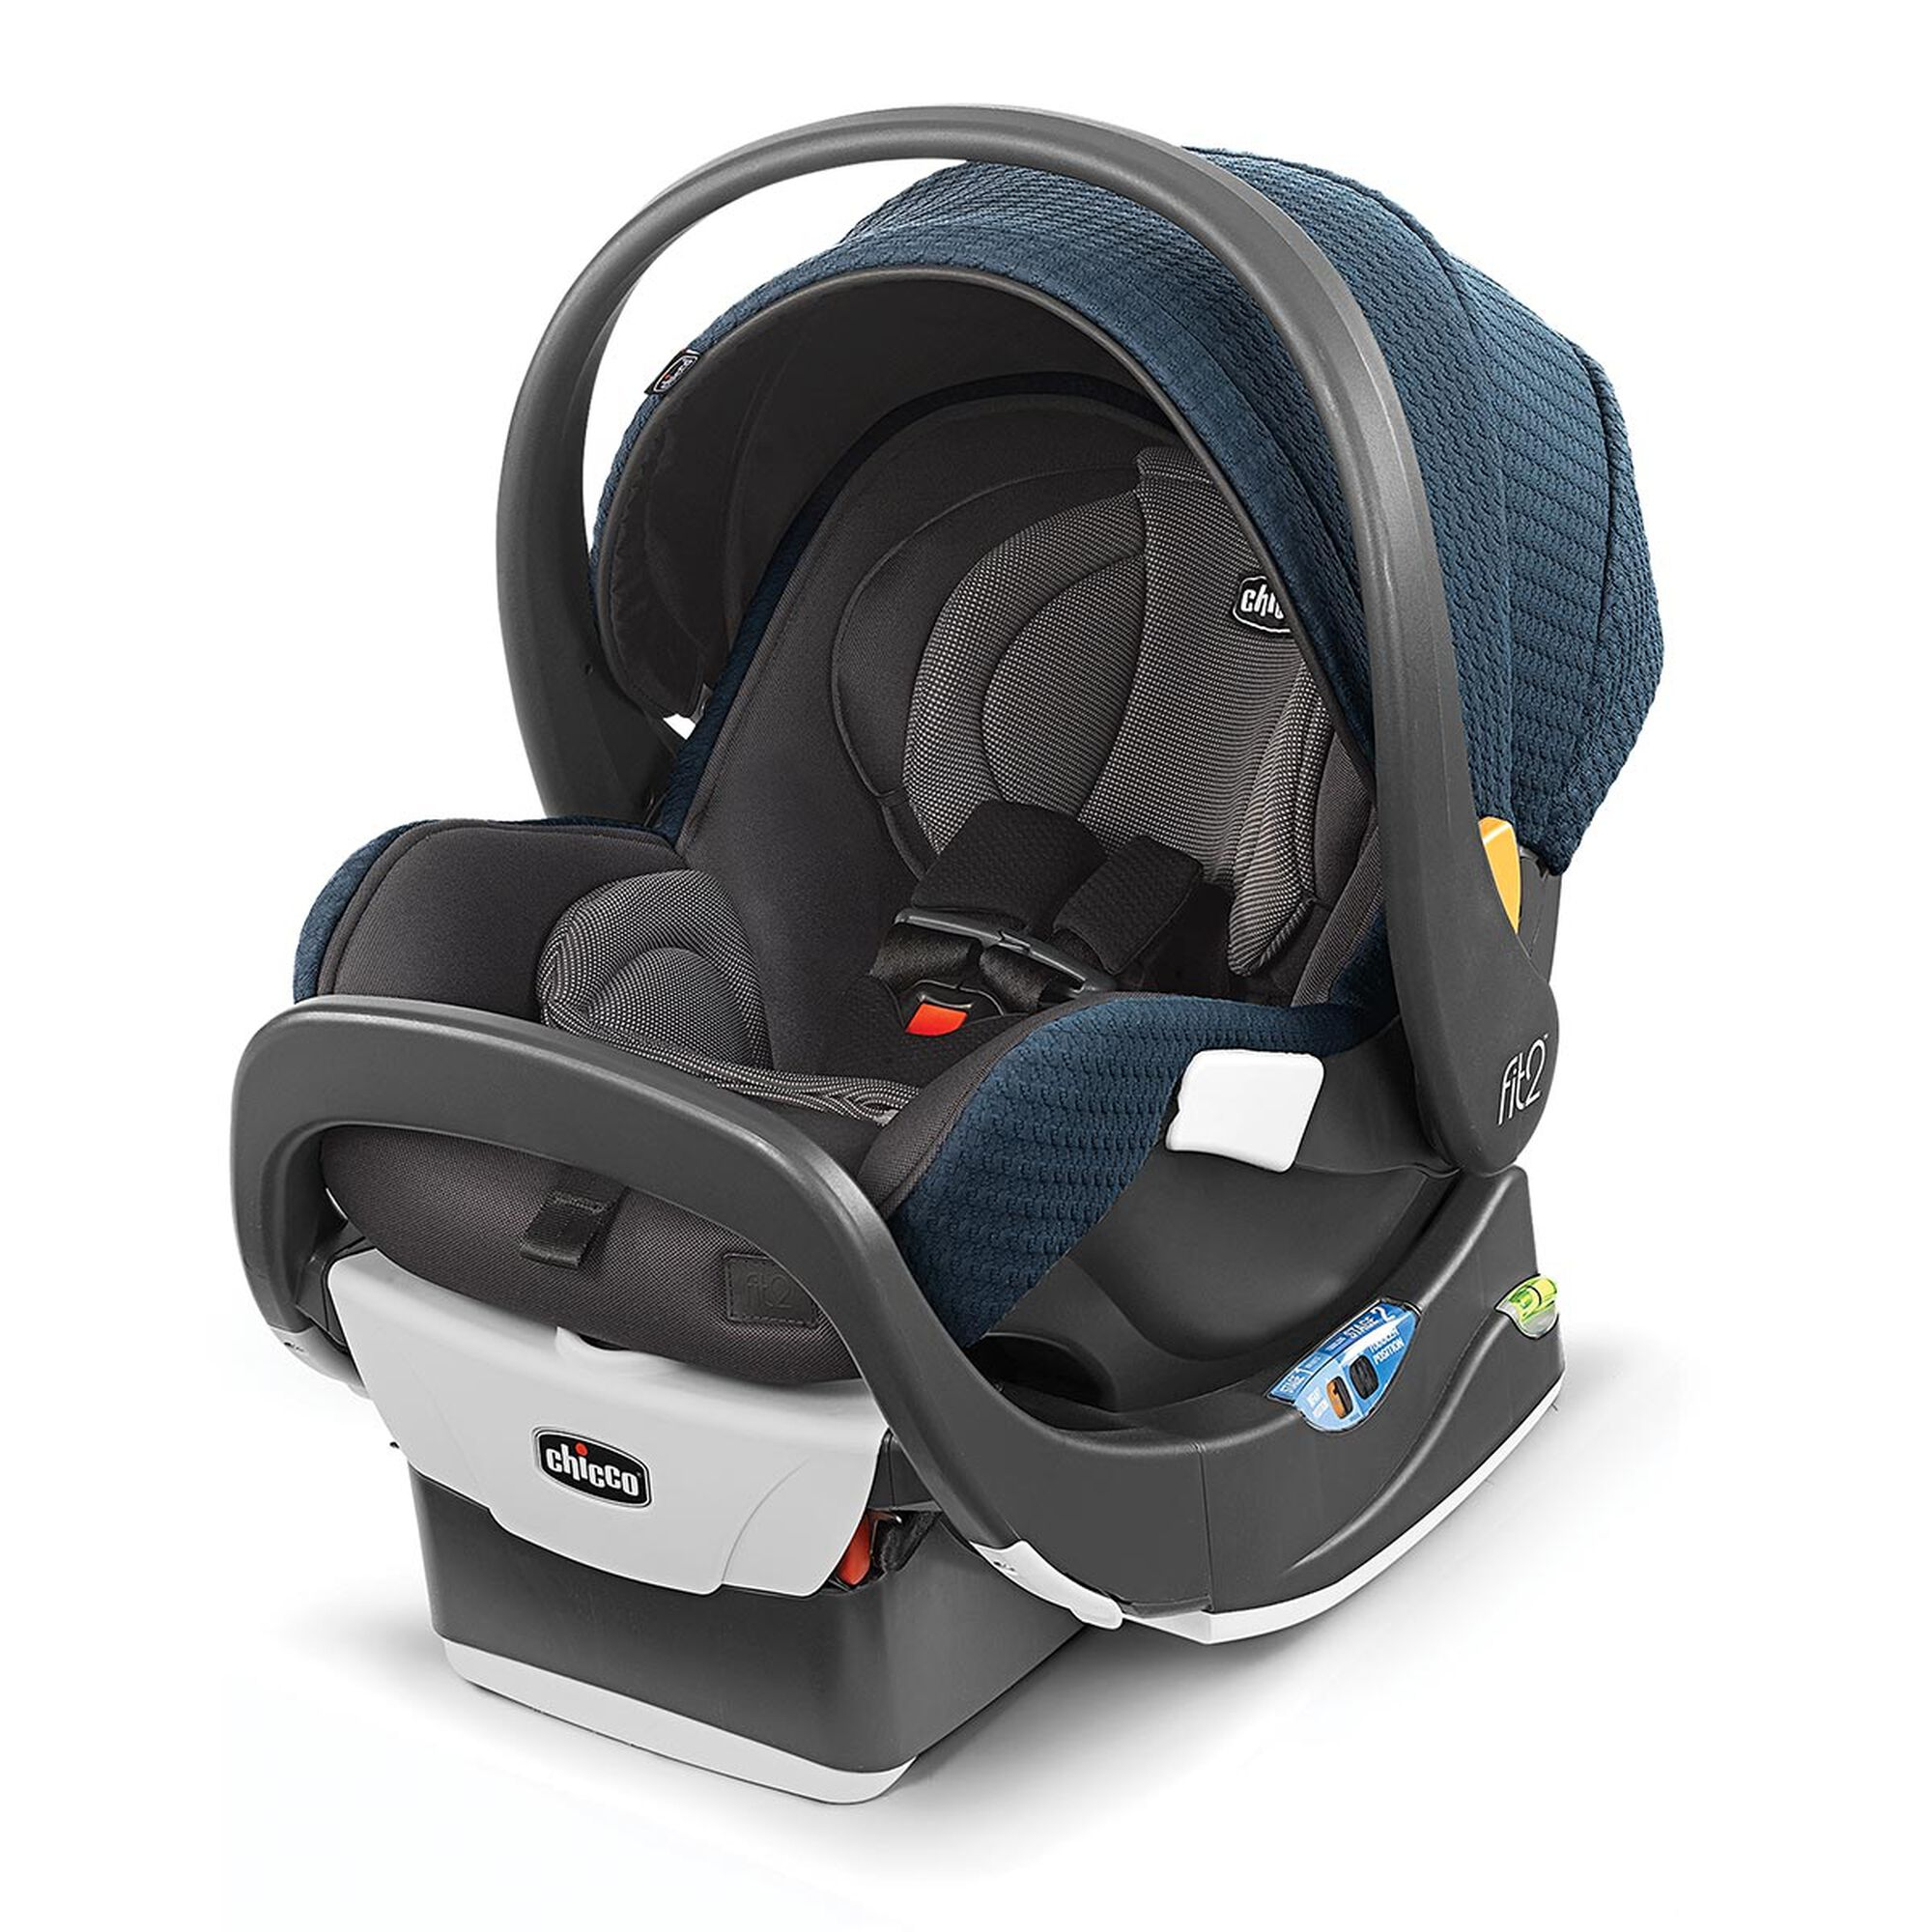 Chicco Car Seat Base >> Chicco Fit2 Rear-Facing Infant & Toddler Car Seat & Base - Tullio